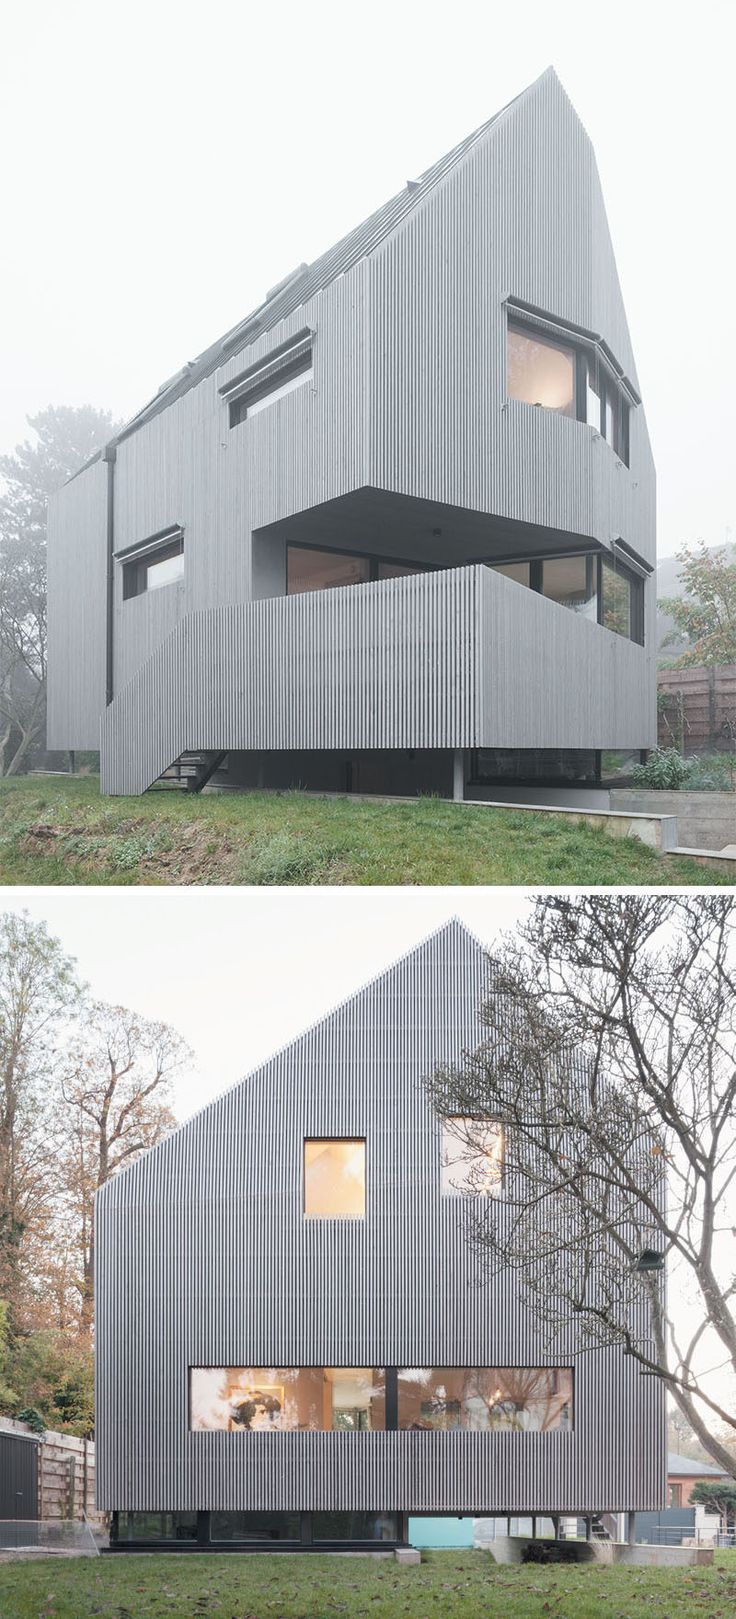 best images about architecture museums le an angular exterior surrounds the mini st interior of this house in helphouse appeararchitecture